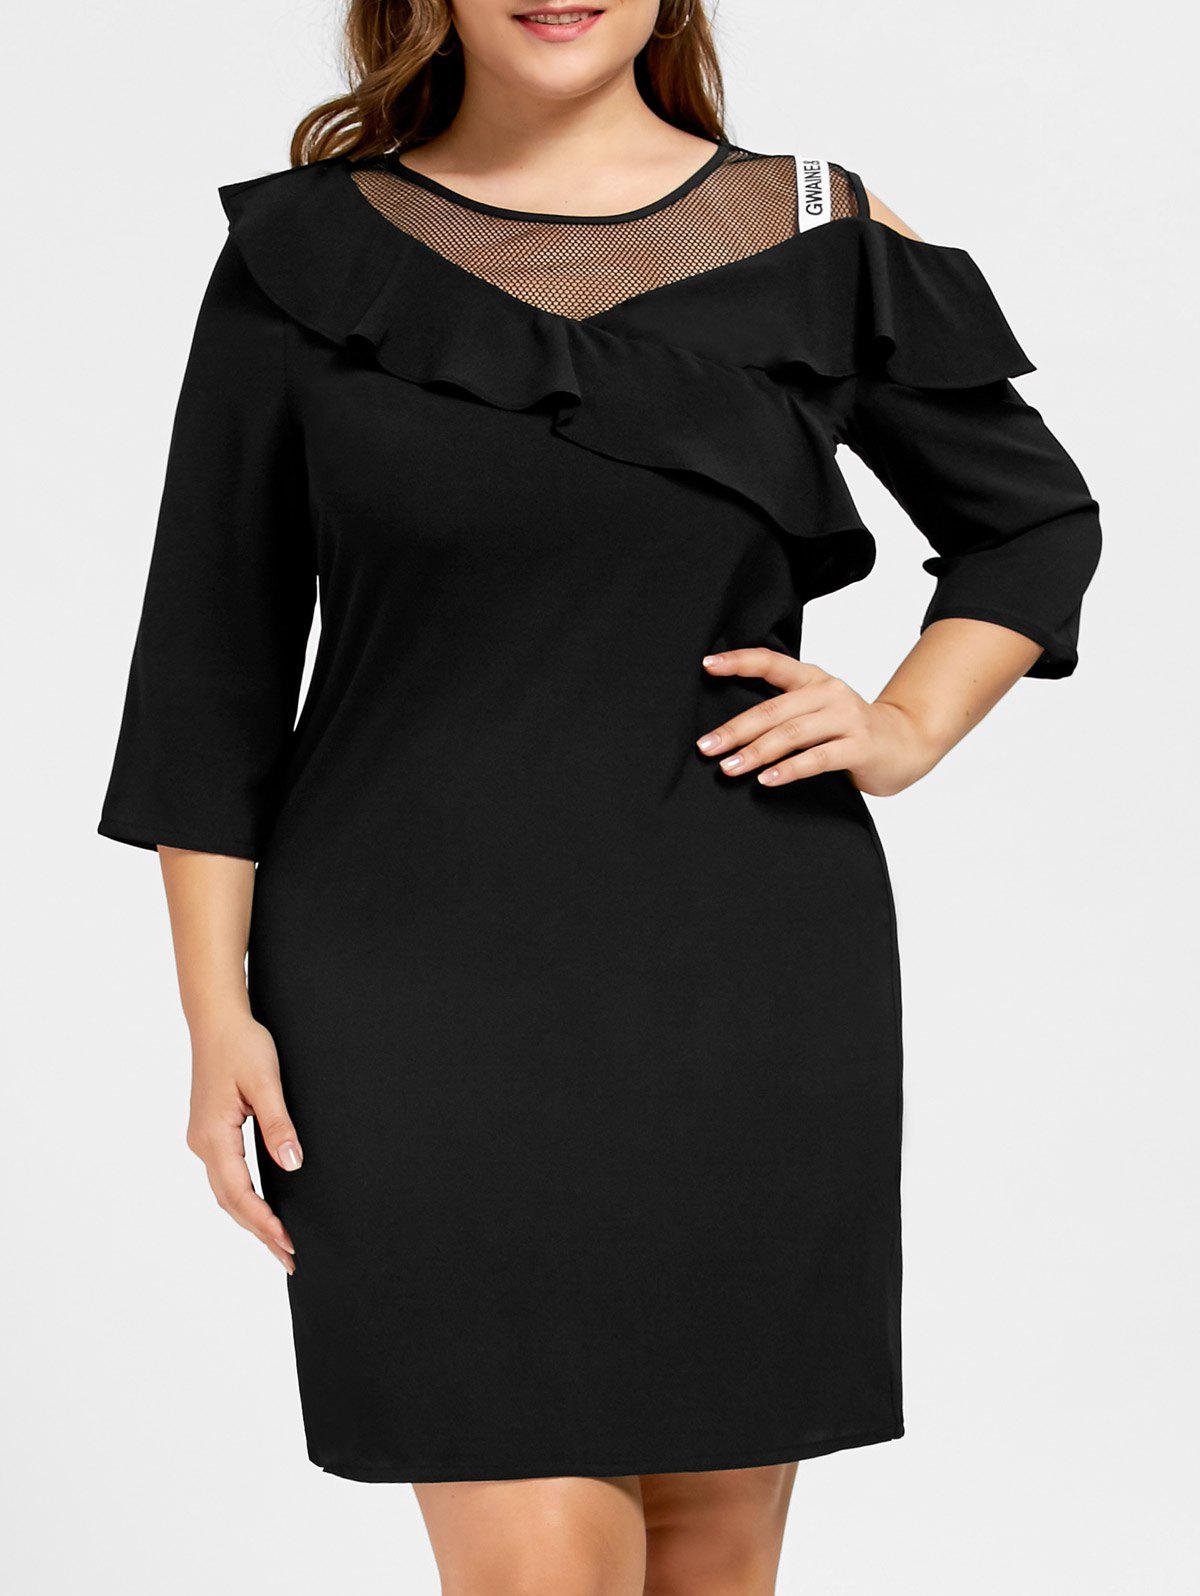 Plus Size Mesh Insert Flounce Dress plus size embroidered mesh insert party dress